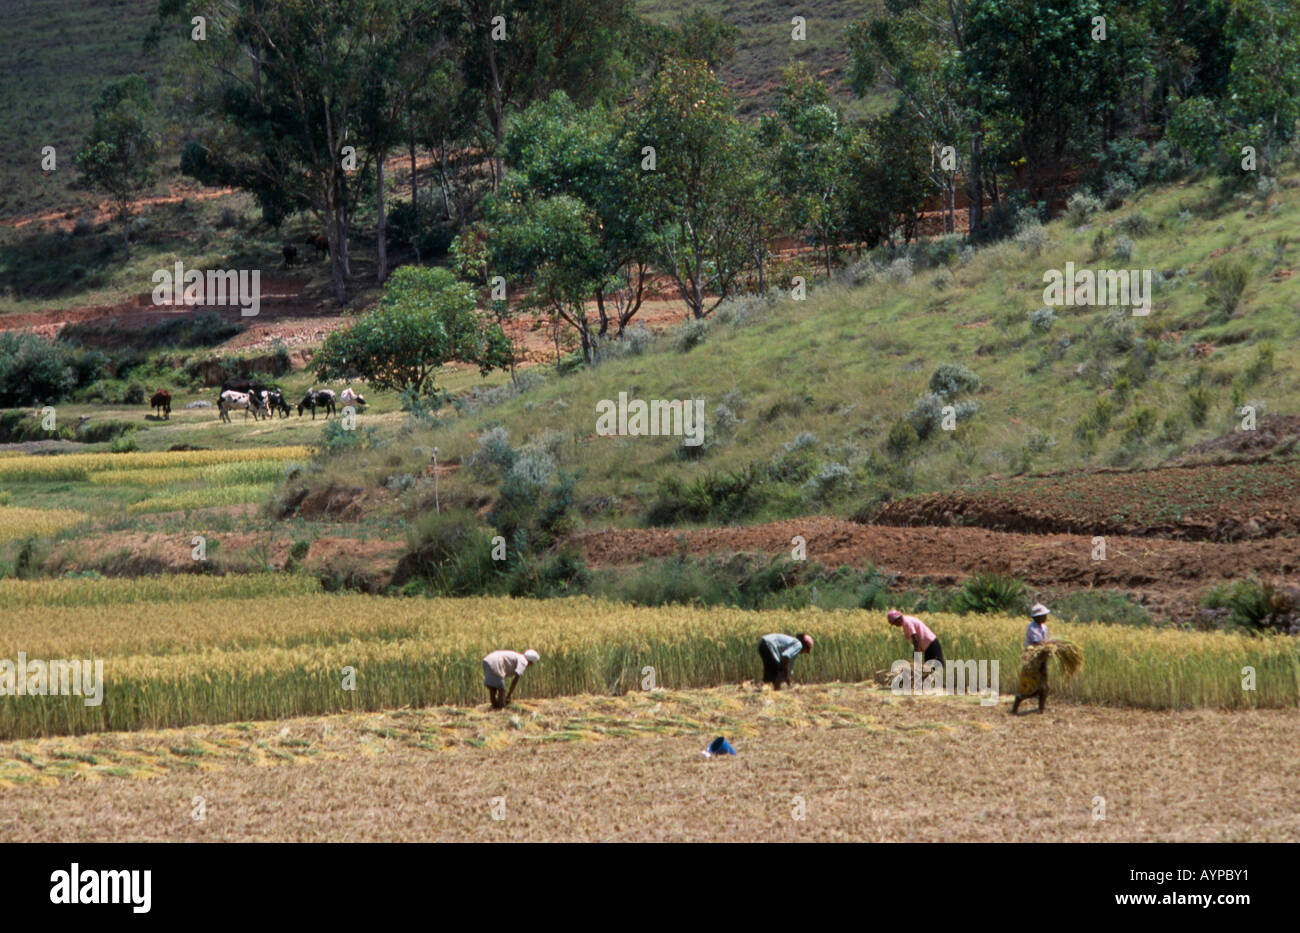 MADAGASCAR Agriculture - Stock Image